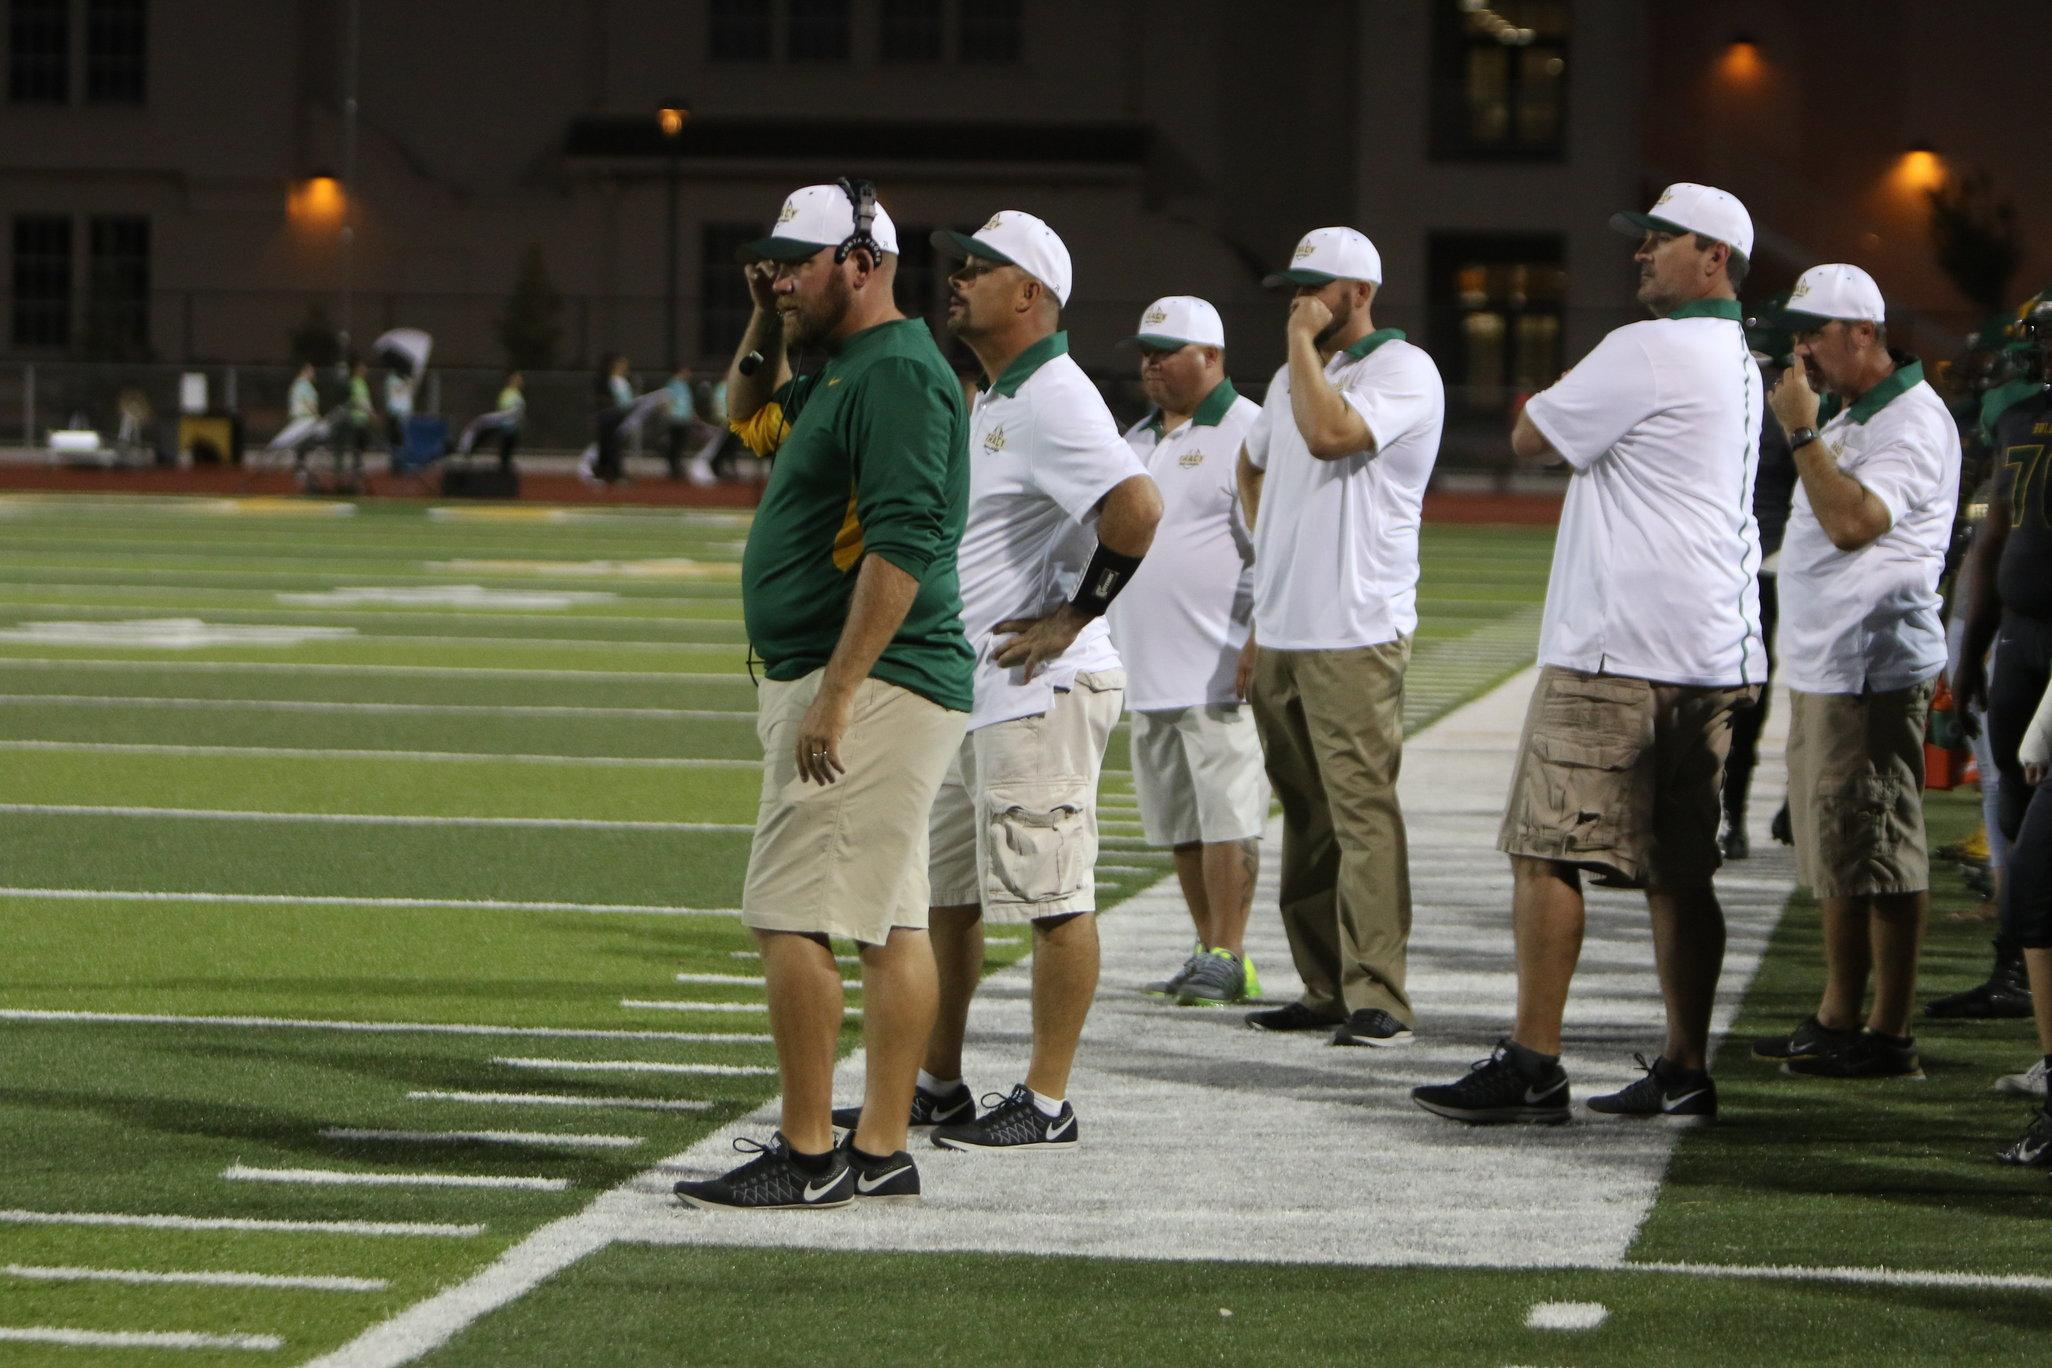 Coach Shrout and other Tracy High coaches